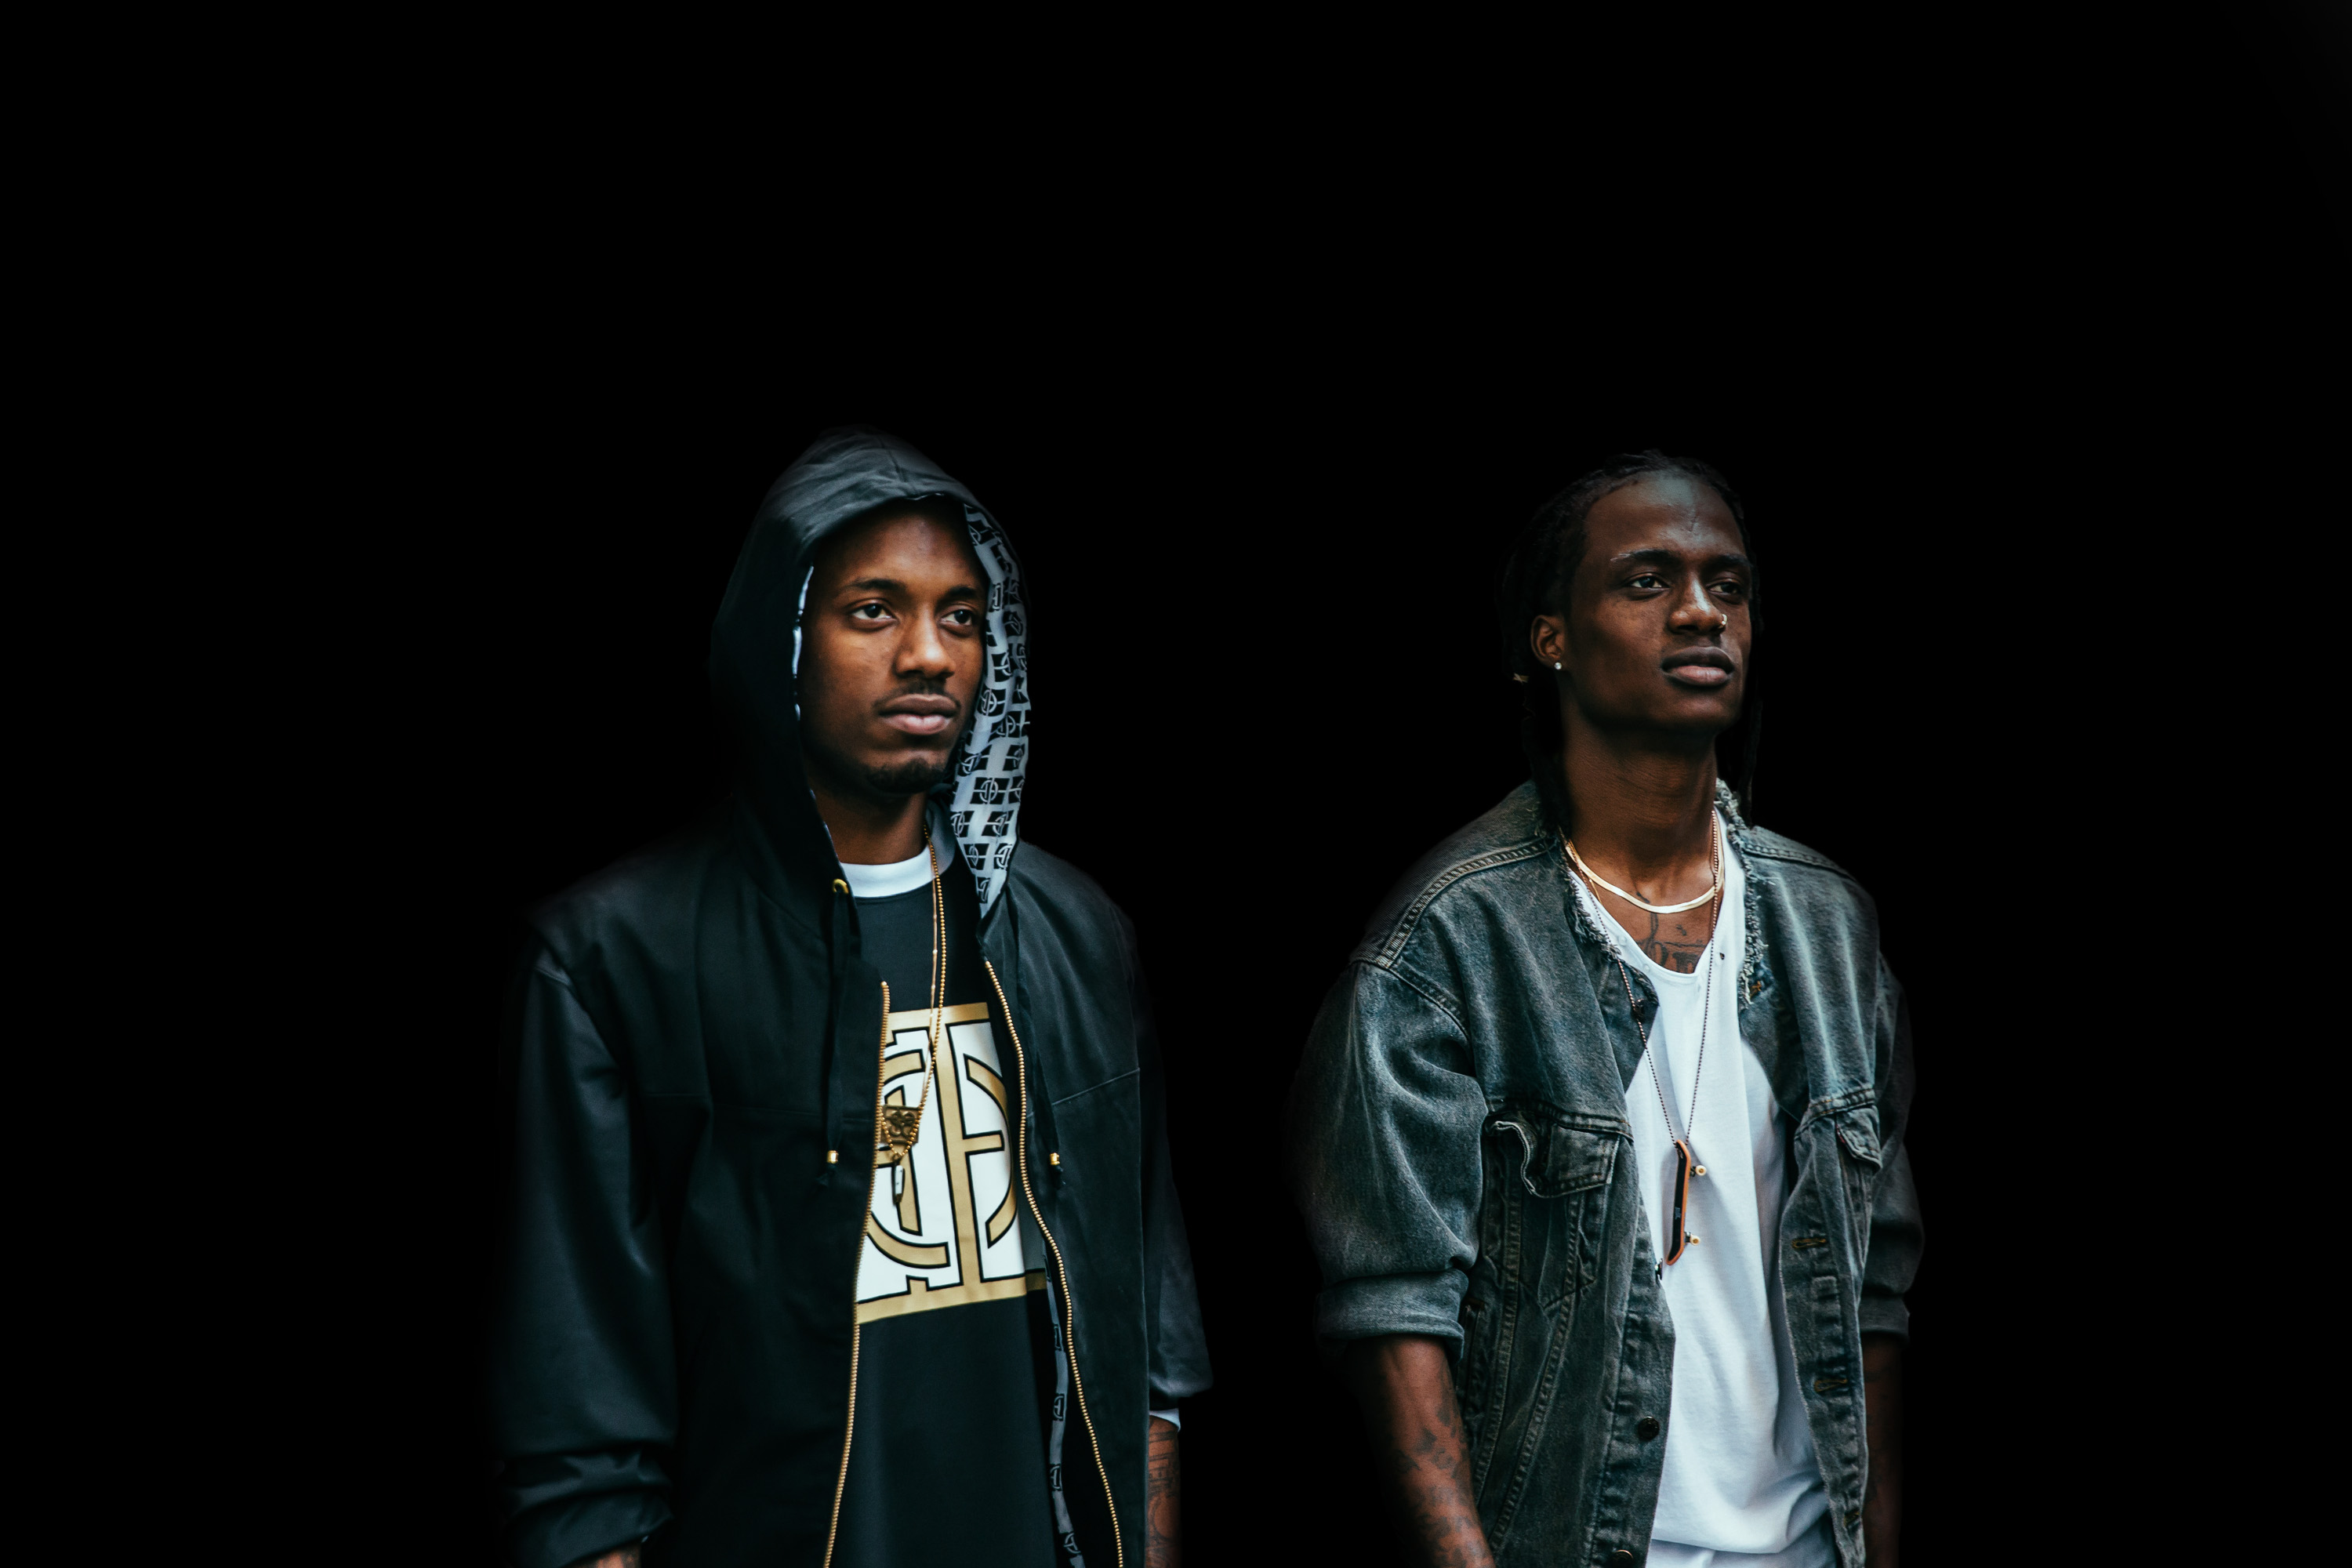 Listen to Audio Push's Latest 'Grits' Joint 1409767086 apparade 58